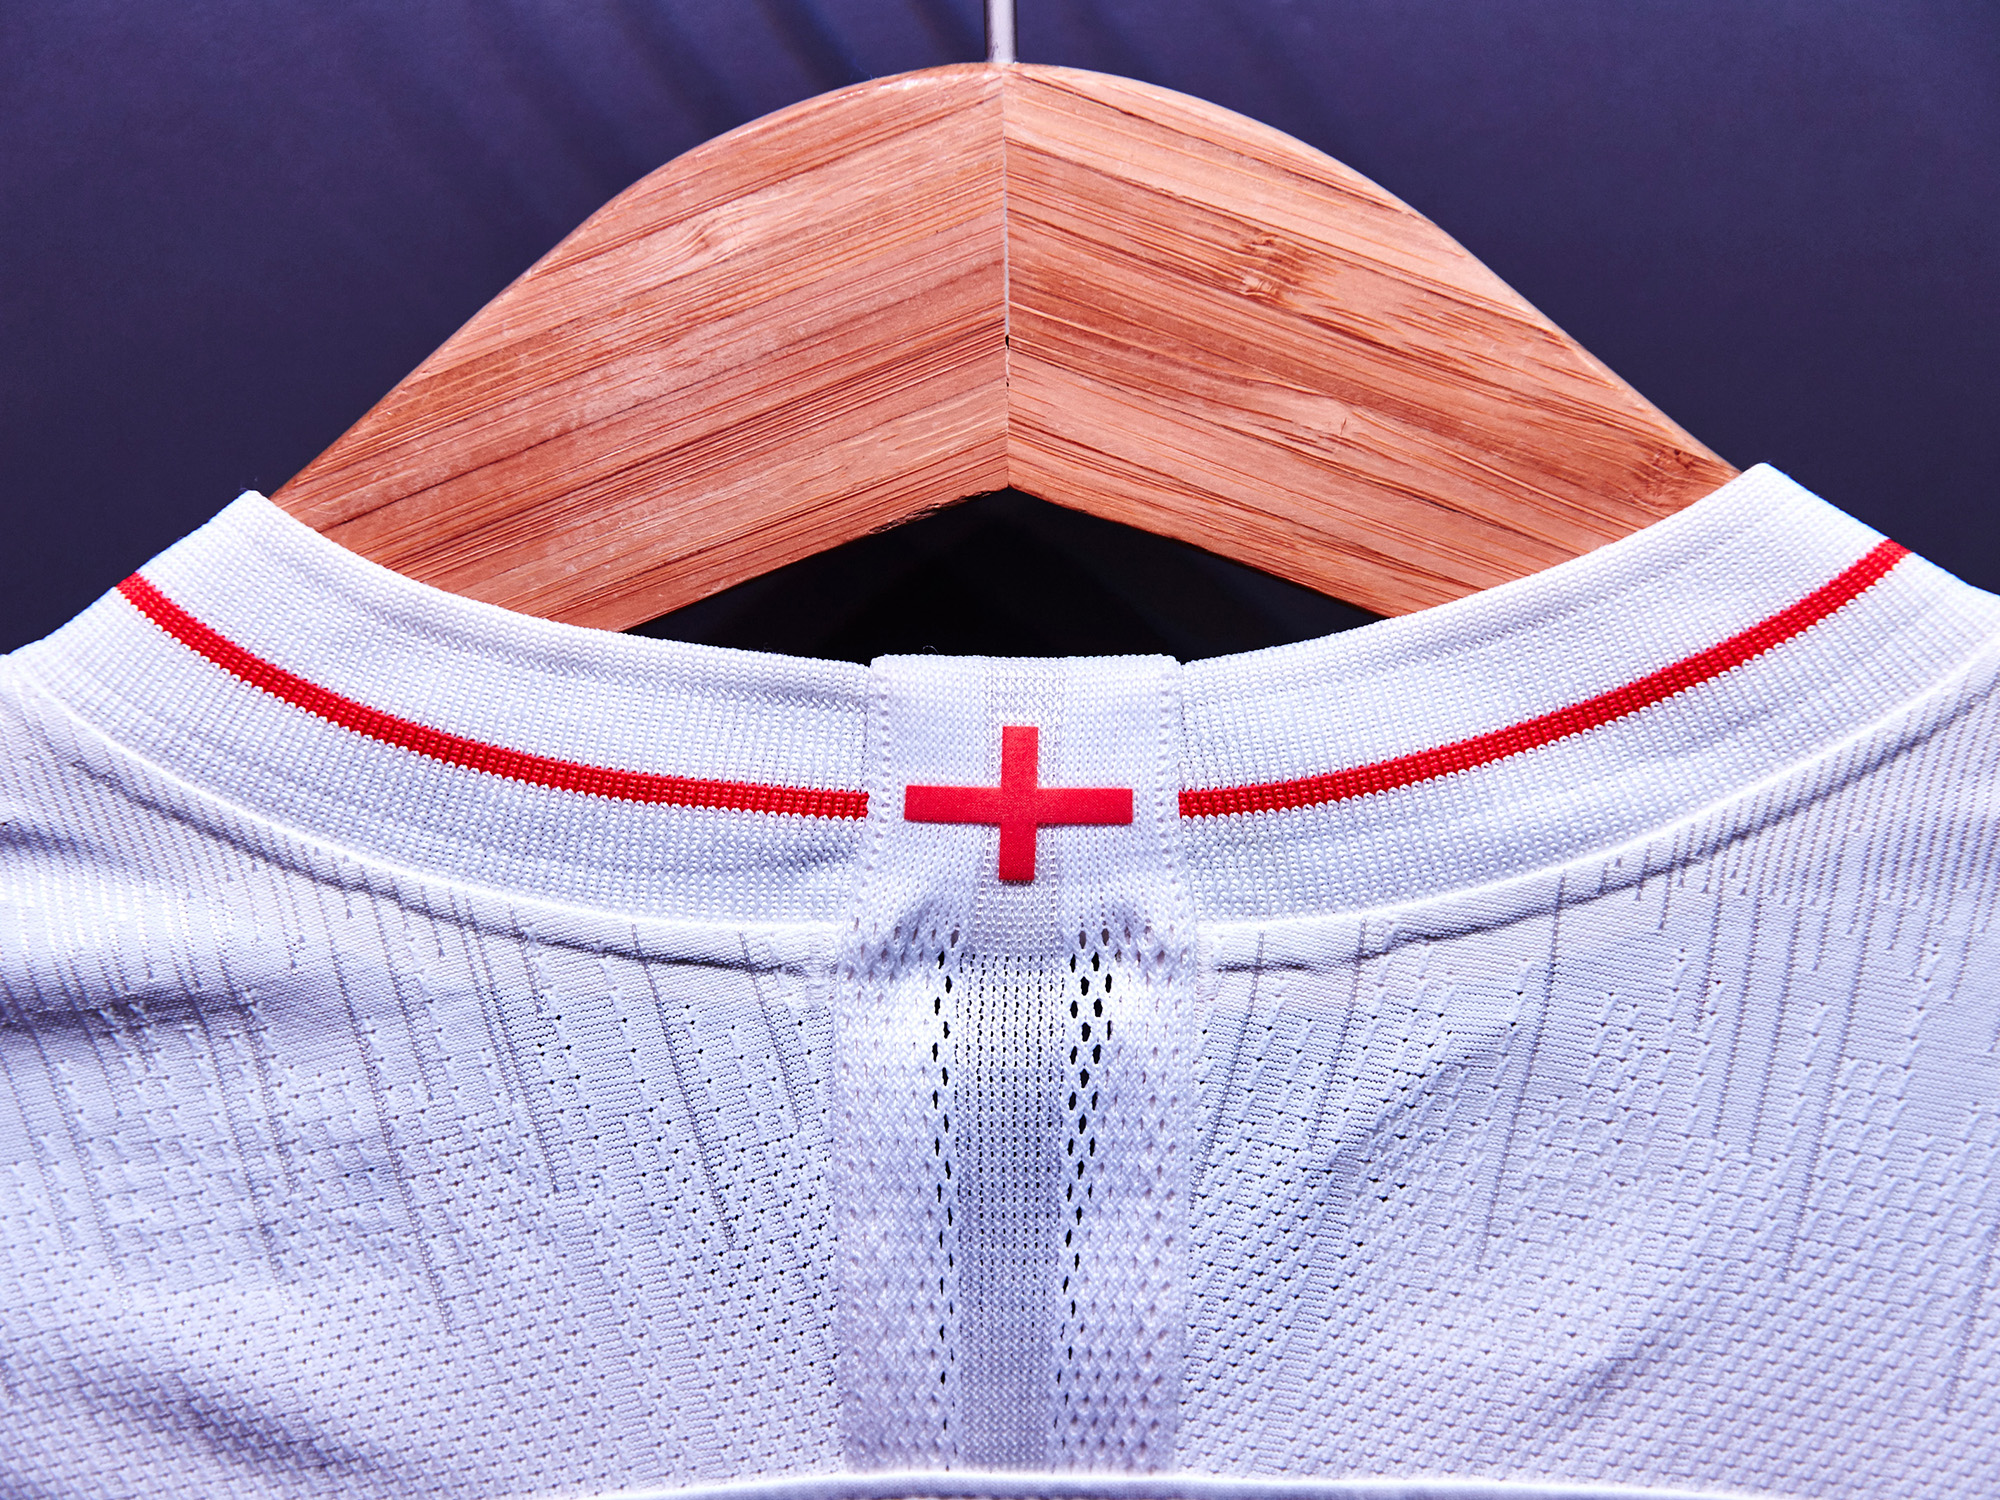 Nike-News-Football-Soccer-England-National-Team-Kit-5_77382